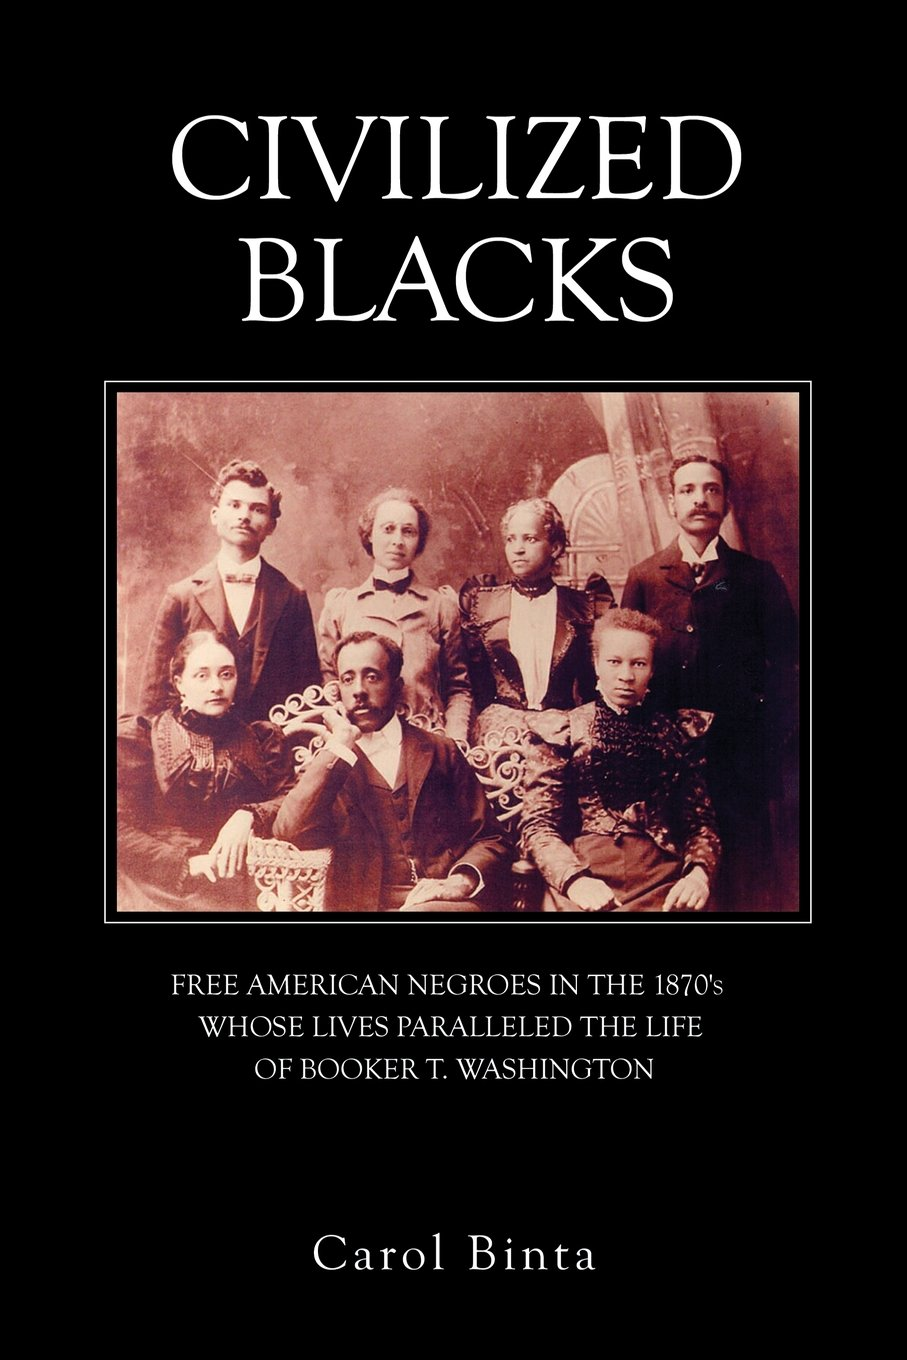 Download Civilized Blacks: Free American Negroes In The 1870's Whose Lives Paralleled The Life Of Booker T. Washington PDF